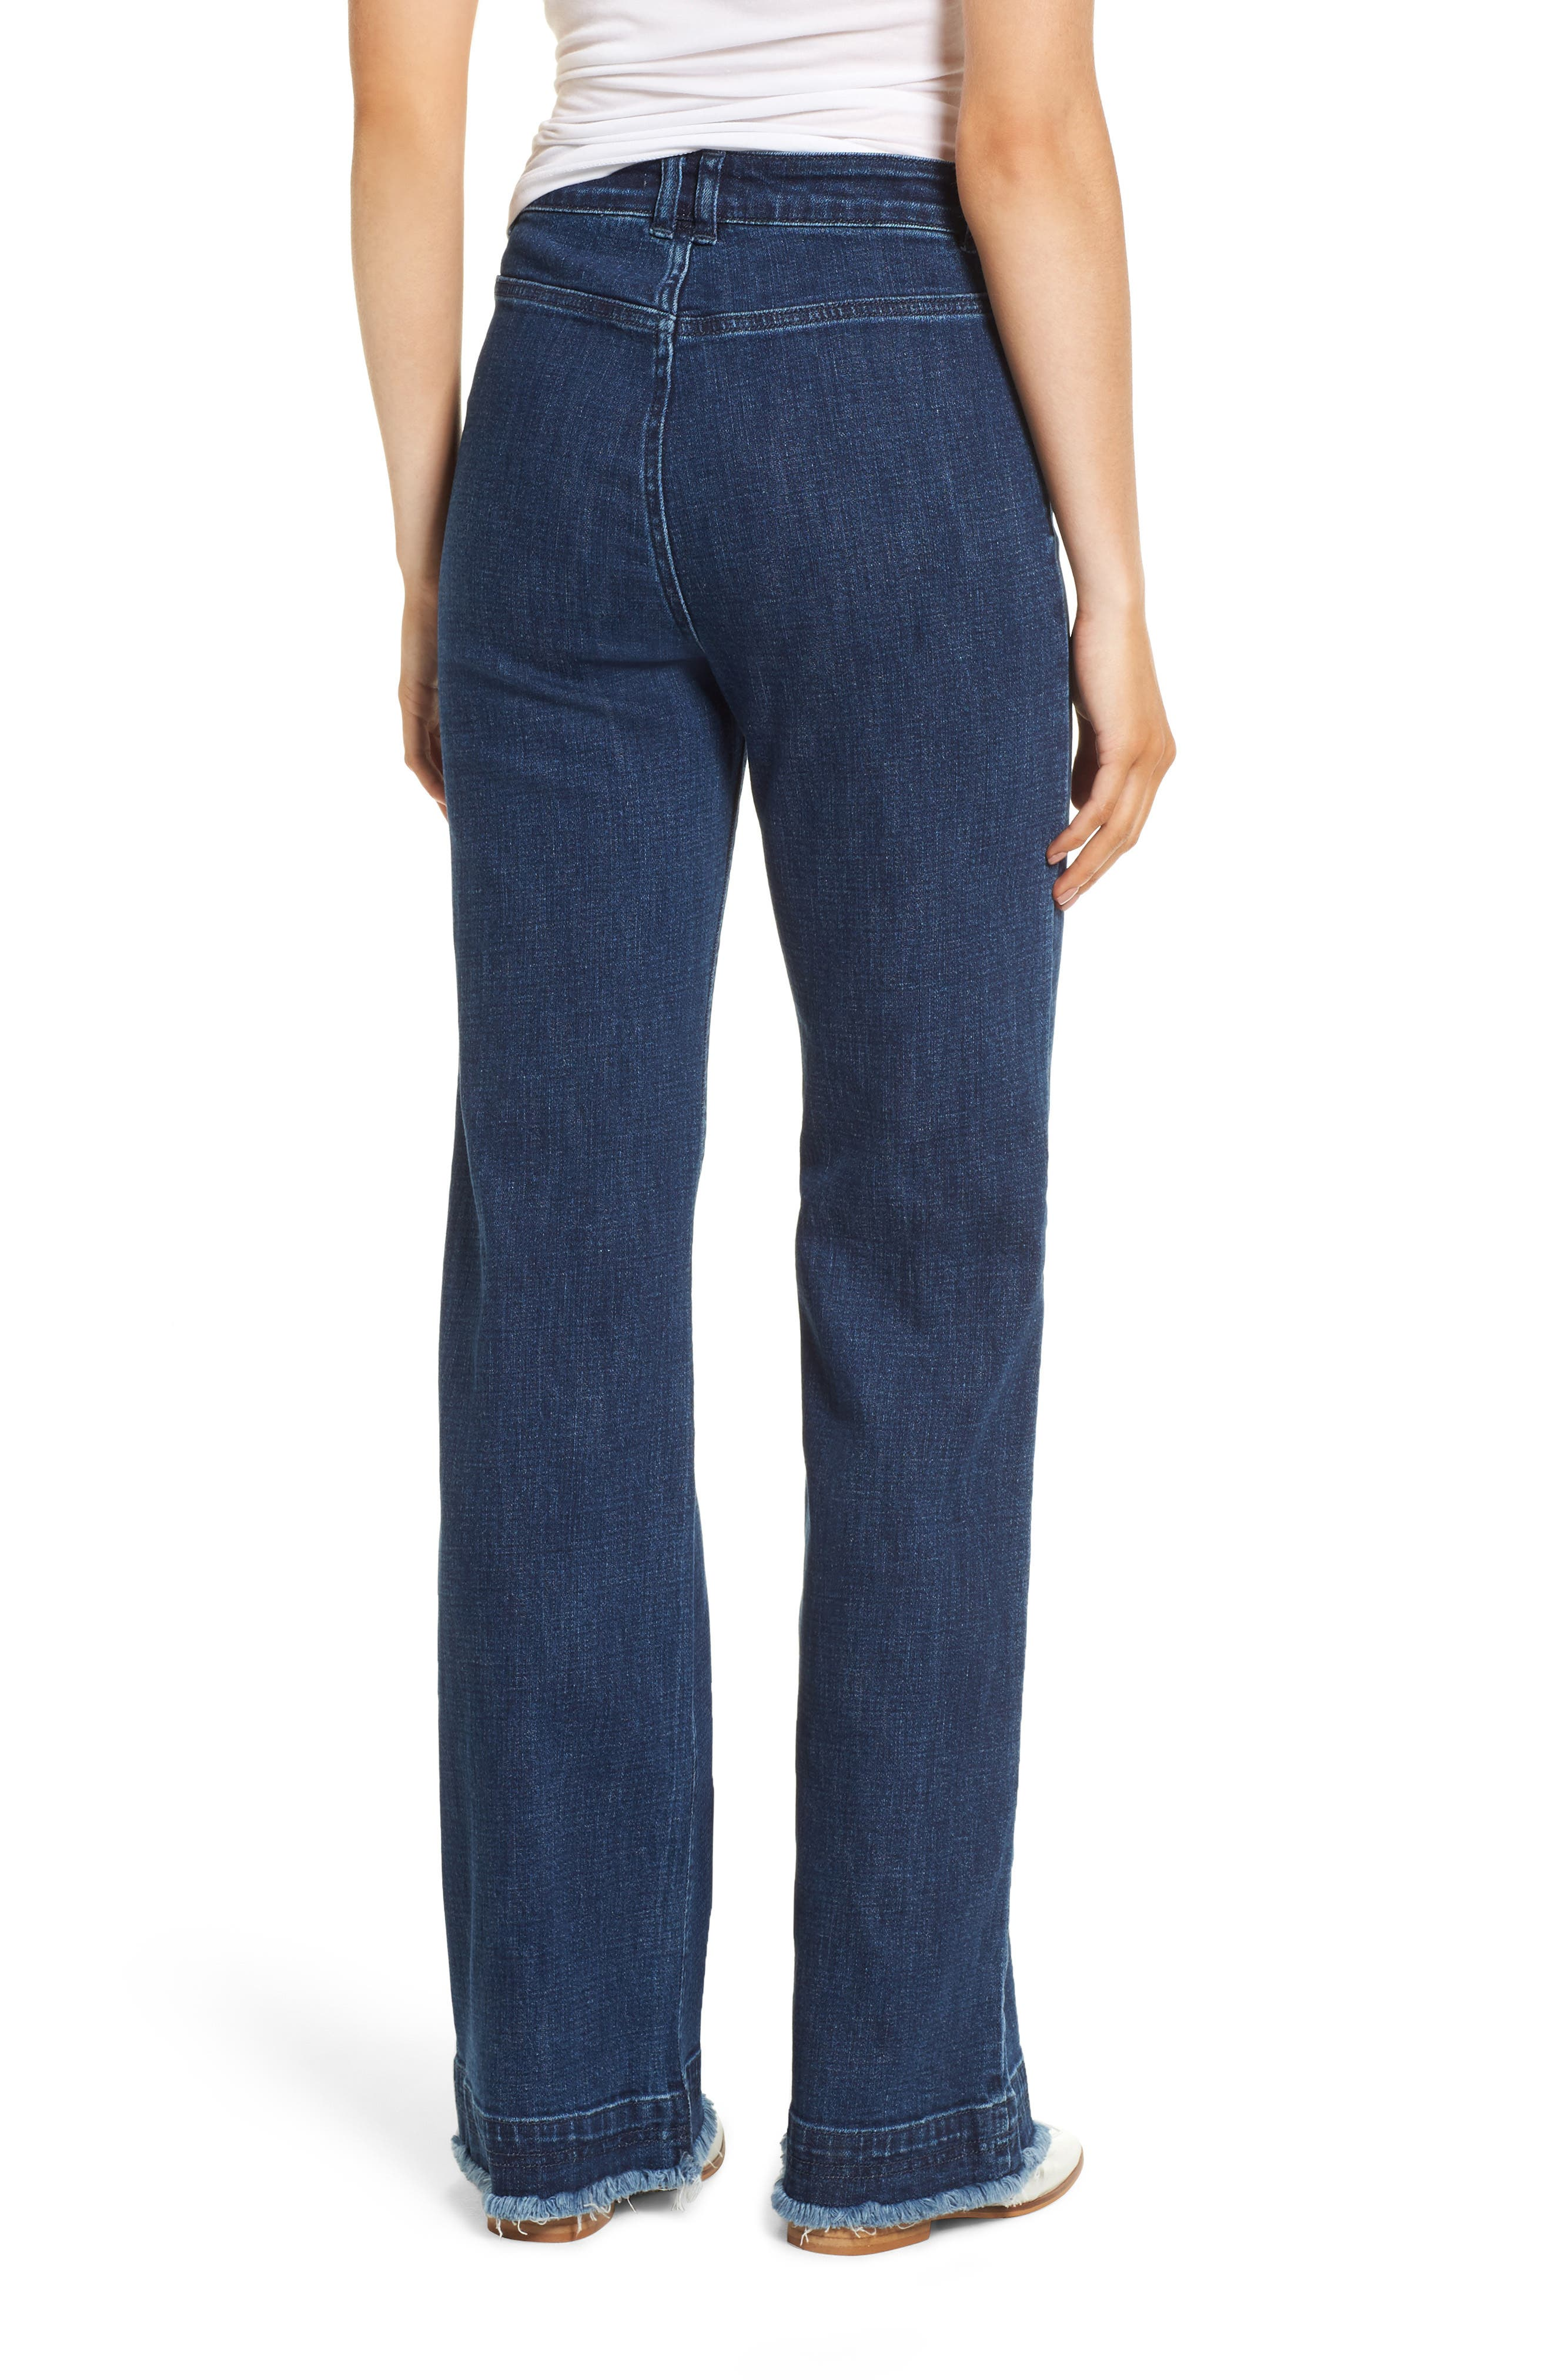 Elwood Wide Leg Jeans,                             Alternate thumbnail 2, color,                             Indigo